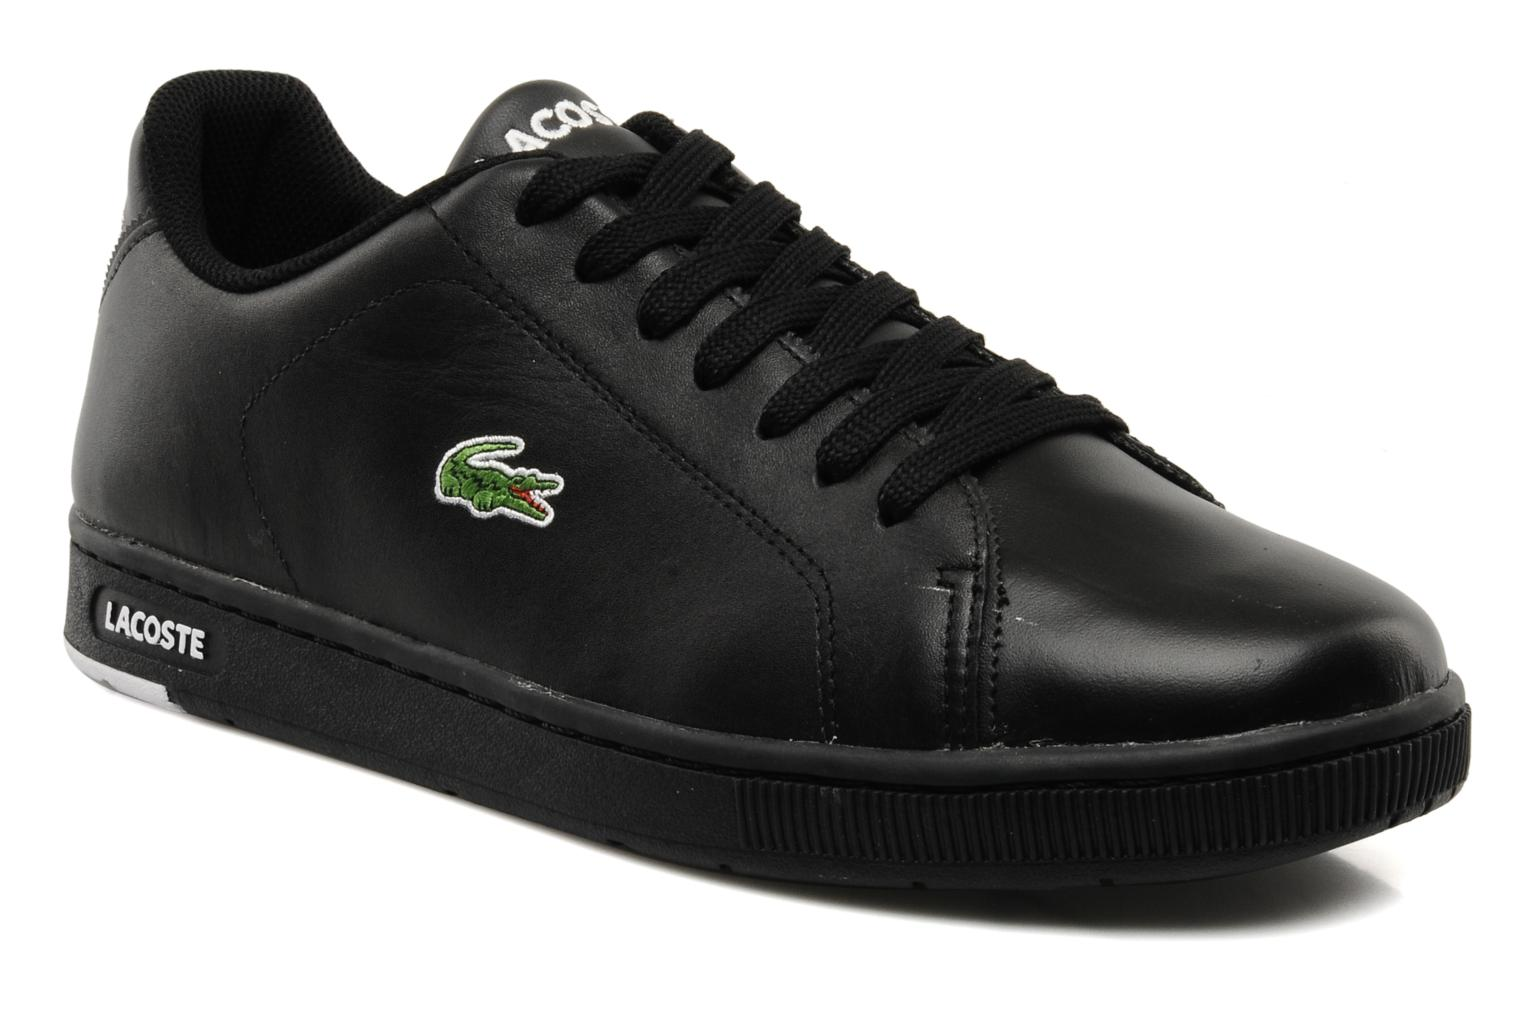 old school shoes lacoste retro sneakers. Black Bedroom Furniture Sets. Home Design Ideas